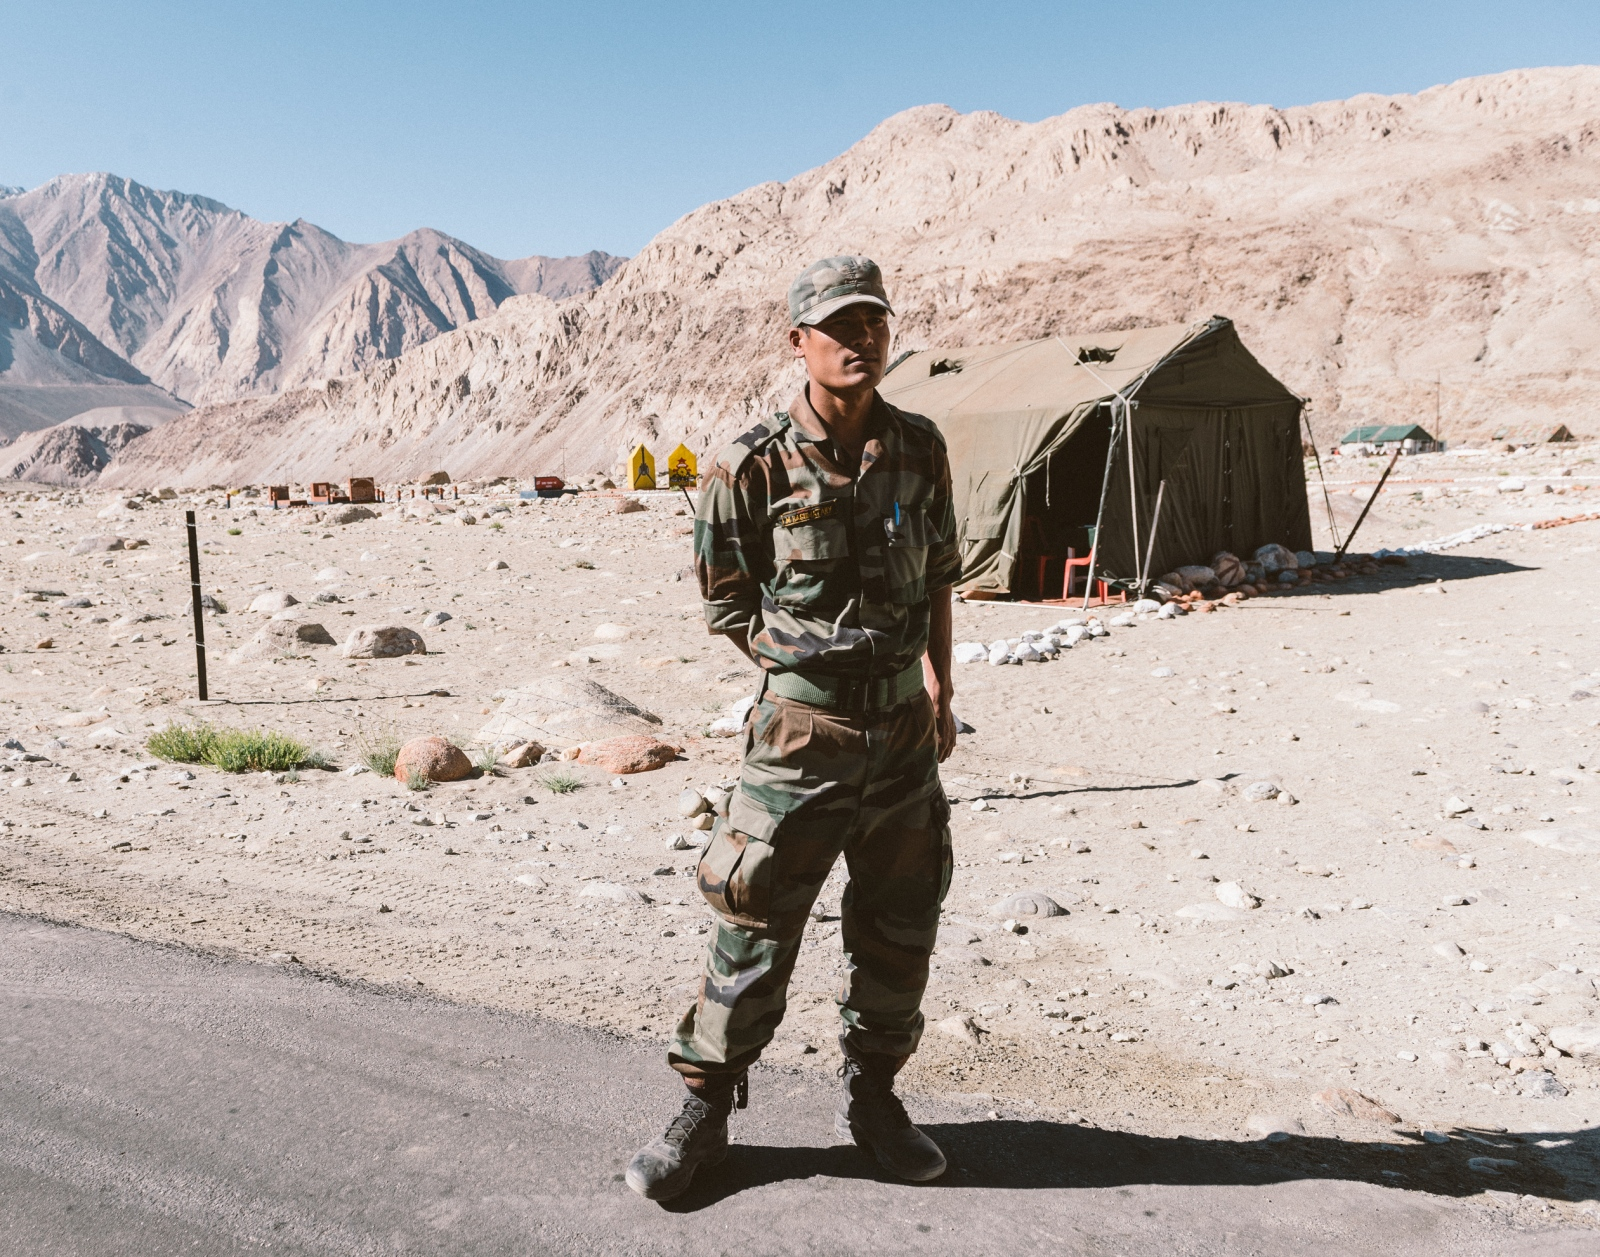 A soldier of the Indian Armed Forces stands guard at a military checkpoint leading to Nubra and Shyok Valley. The valleys are geopolitically sensitive areas tucked within the Karakoram mountain ranges and are restricted to non-military personnel due to its contested status between India and China and Pakistan.